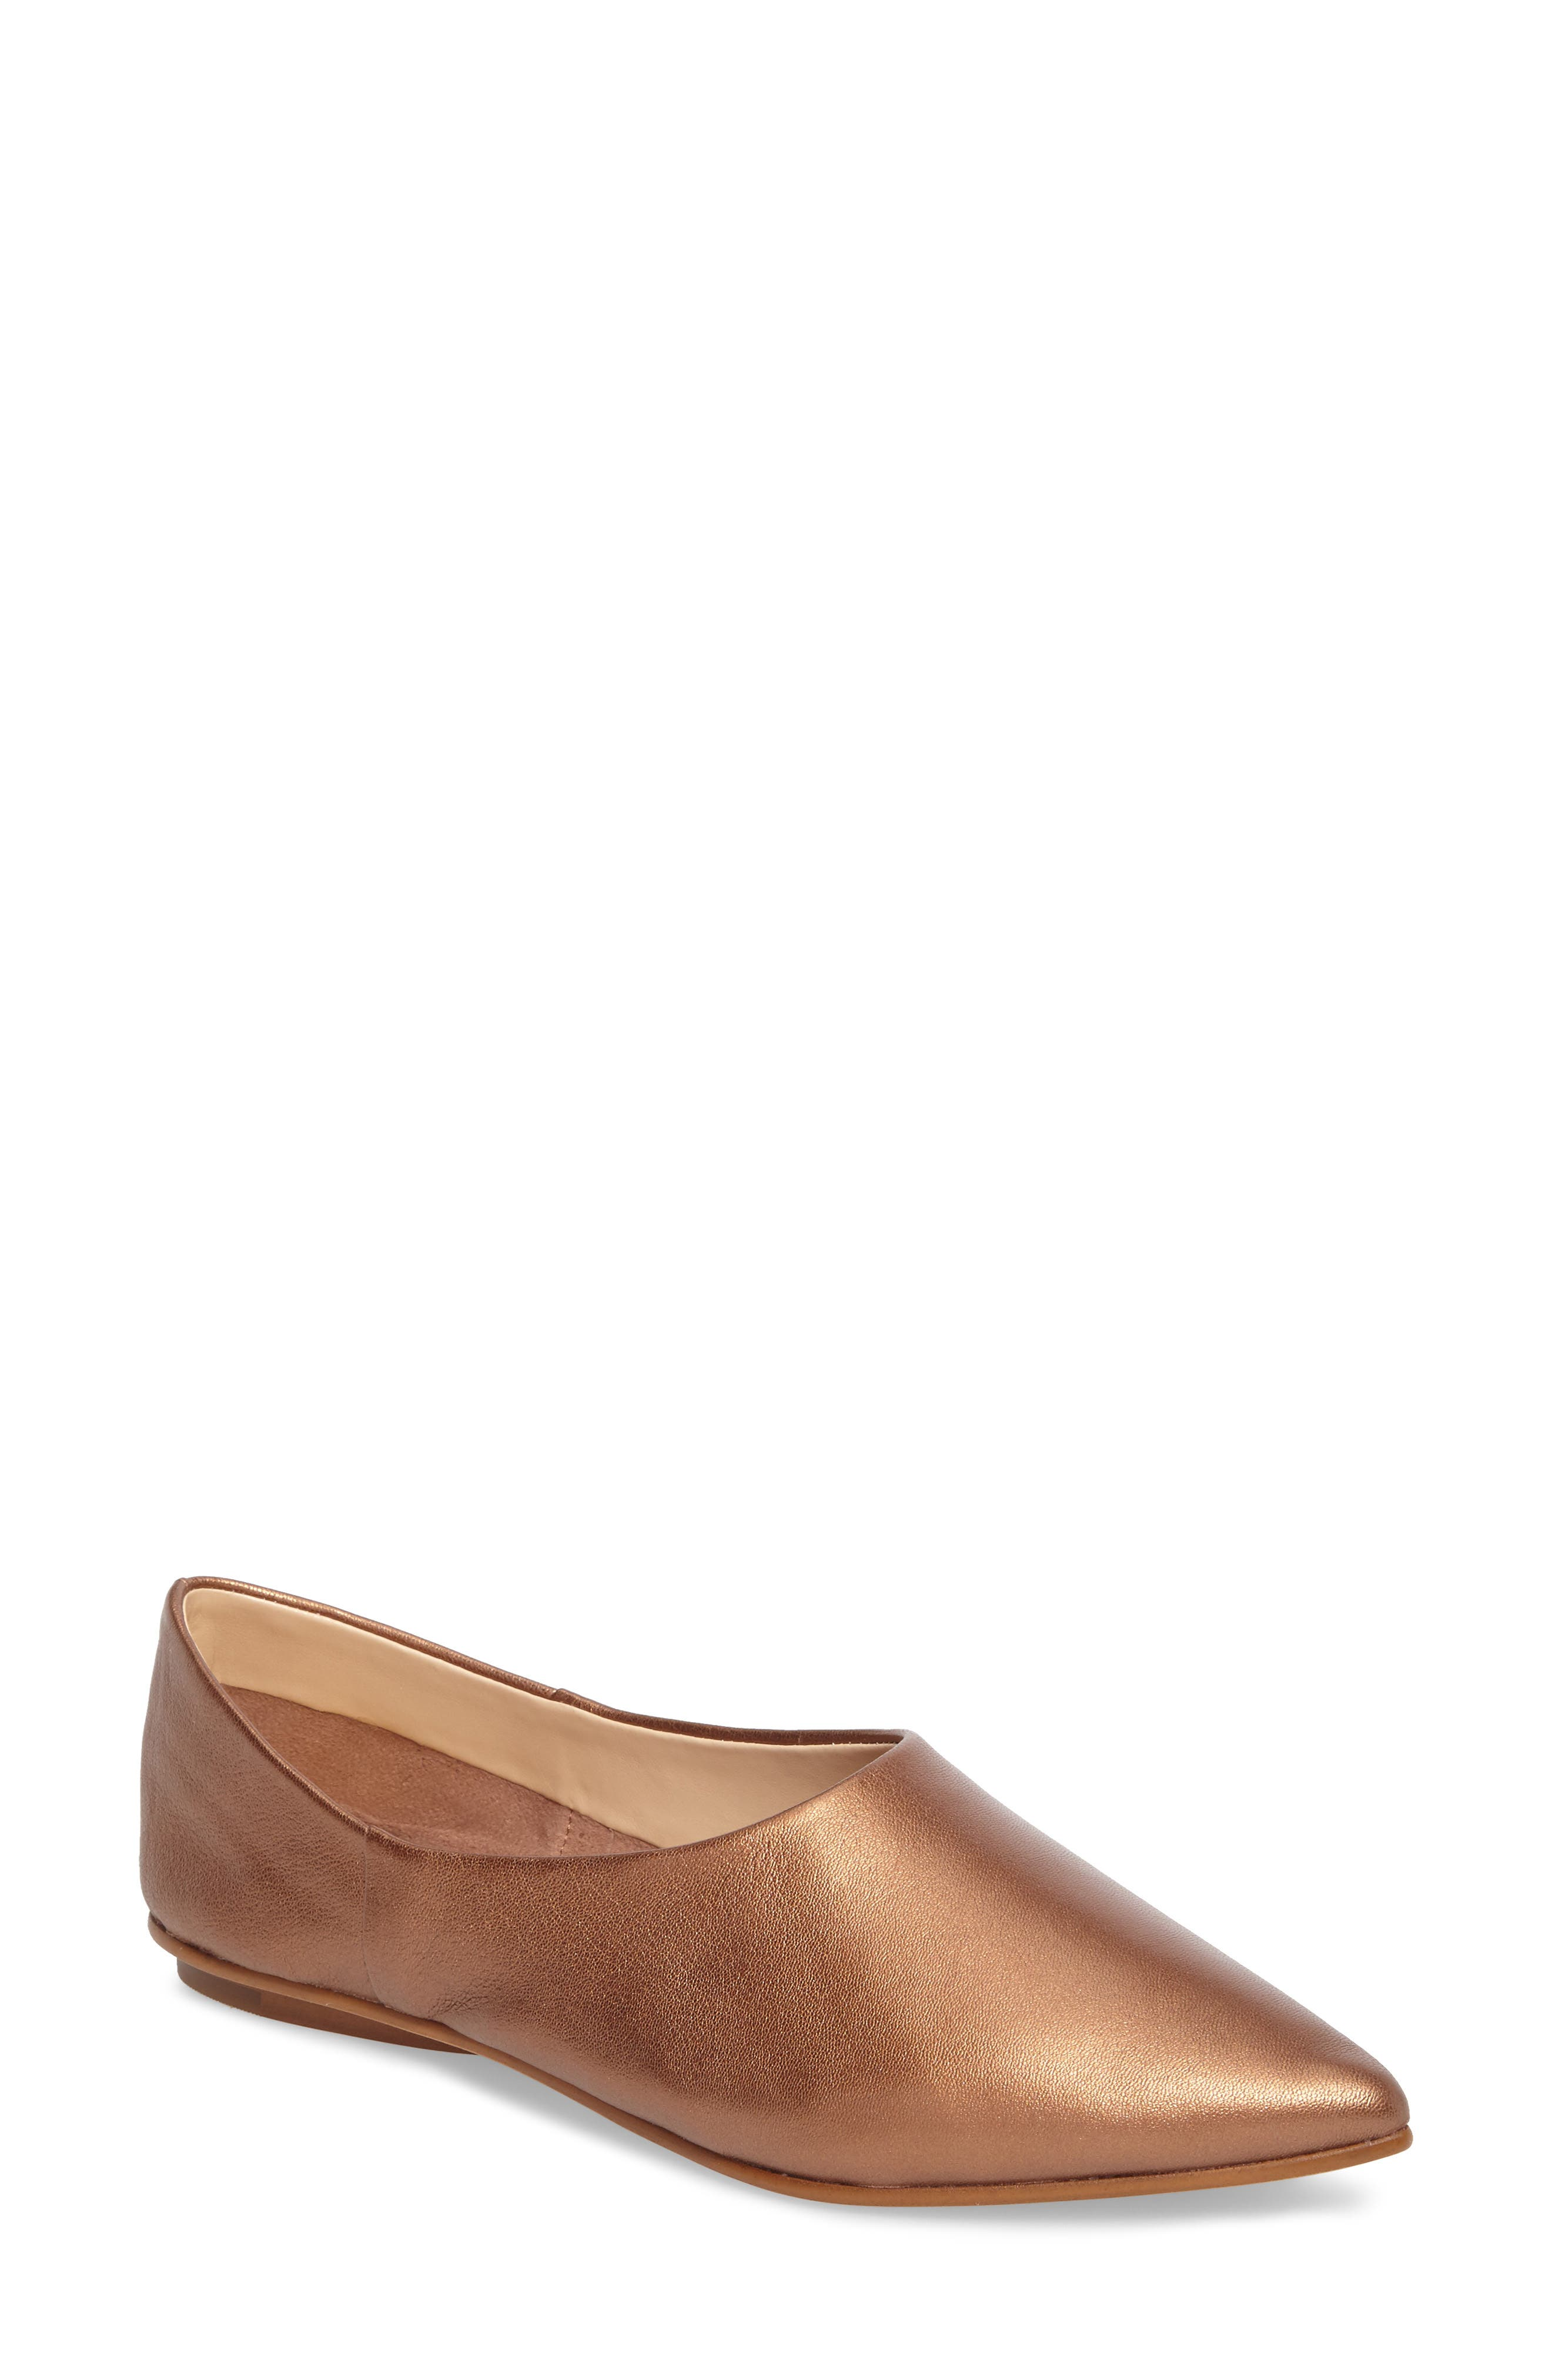 Stanta Pointy Toe Flat,                             Main thumbnail 1, color,                             Penny Leather